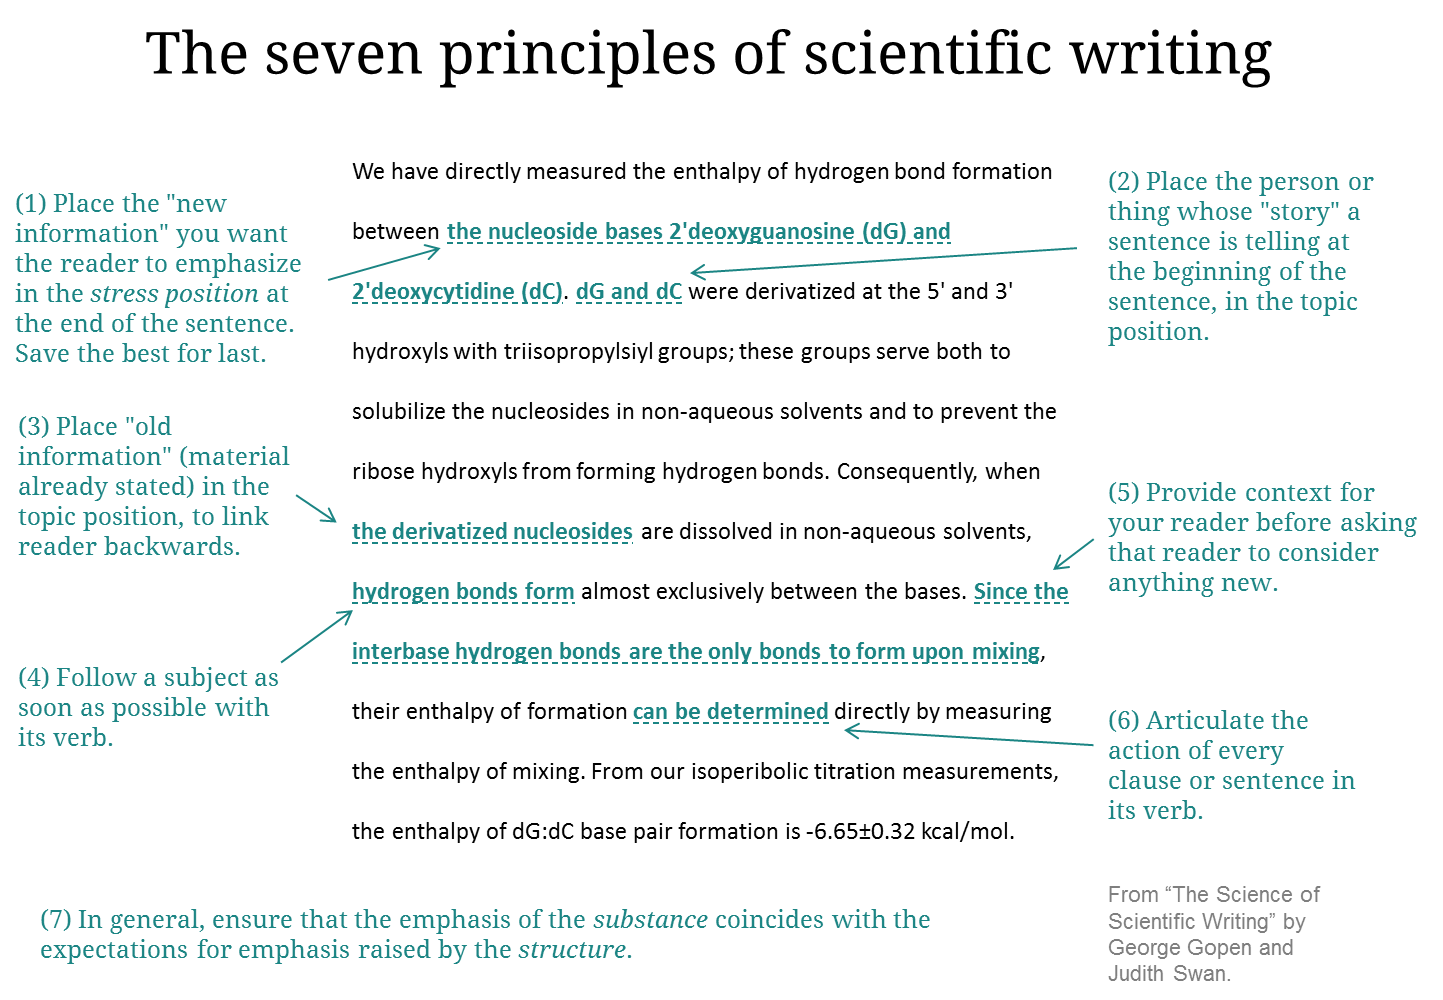 scientific writing essay Feature article the science of scientific writing if the reader is to grasp what the writer means, the writer must understand what the reader needs.